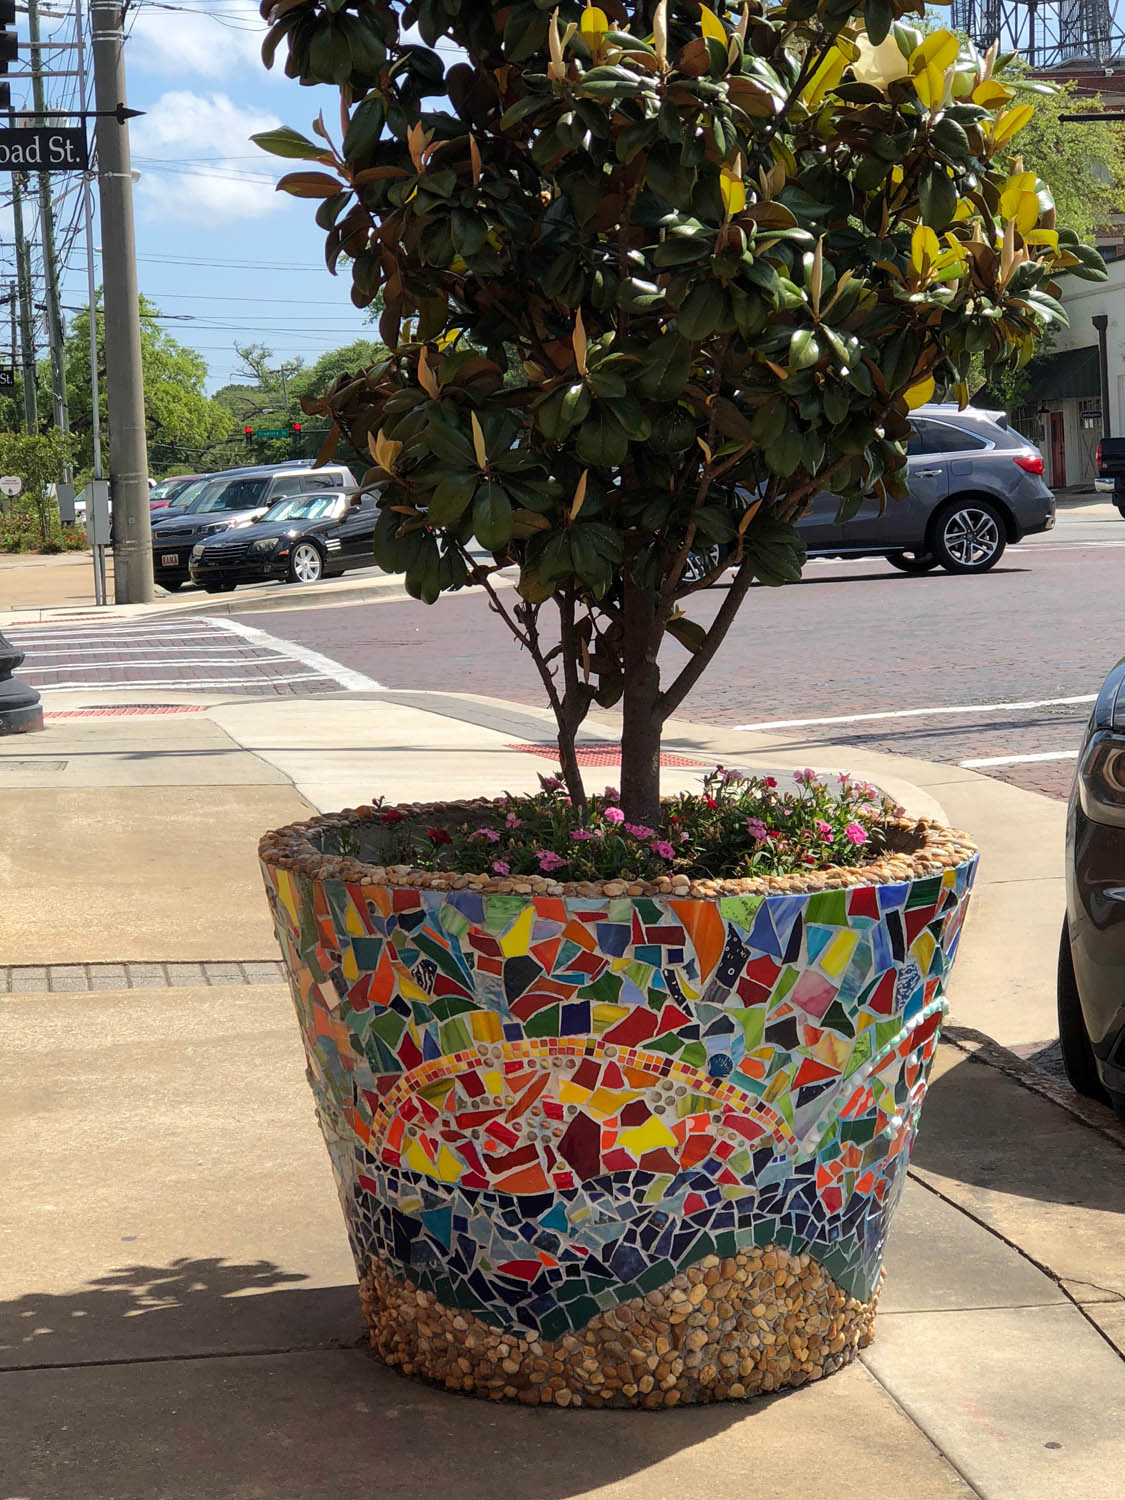 Tile mosaic pot on the street in downtown Thomasville, Georgia